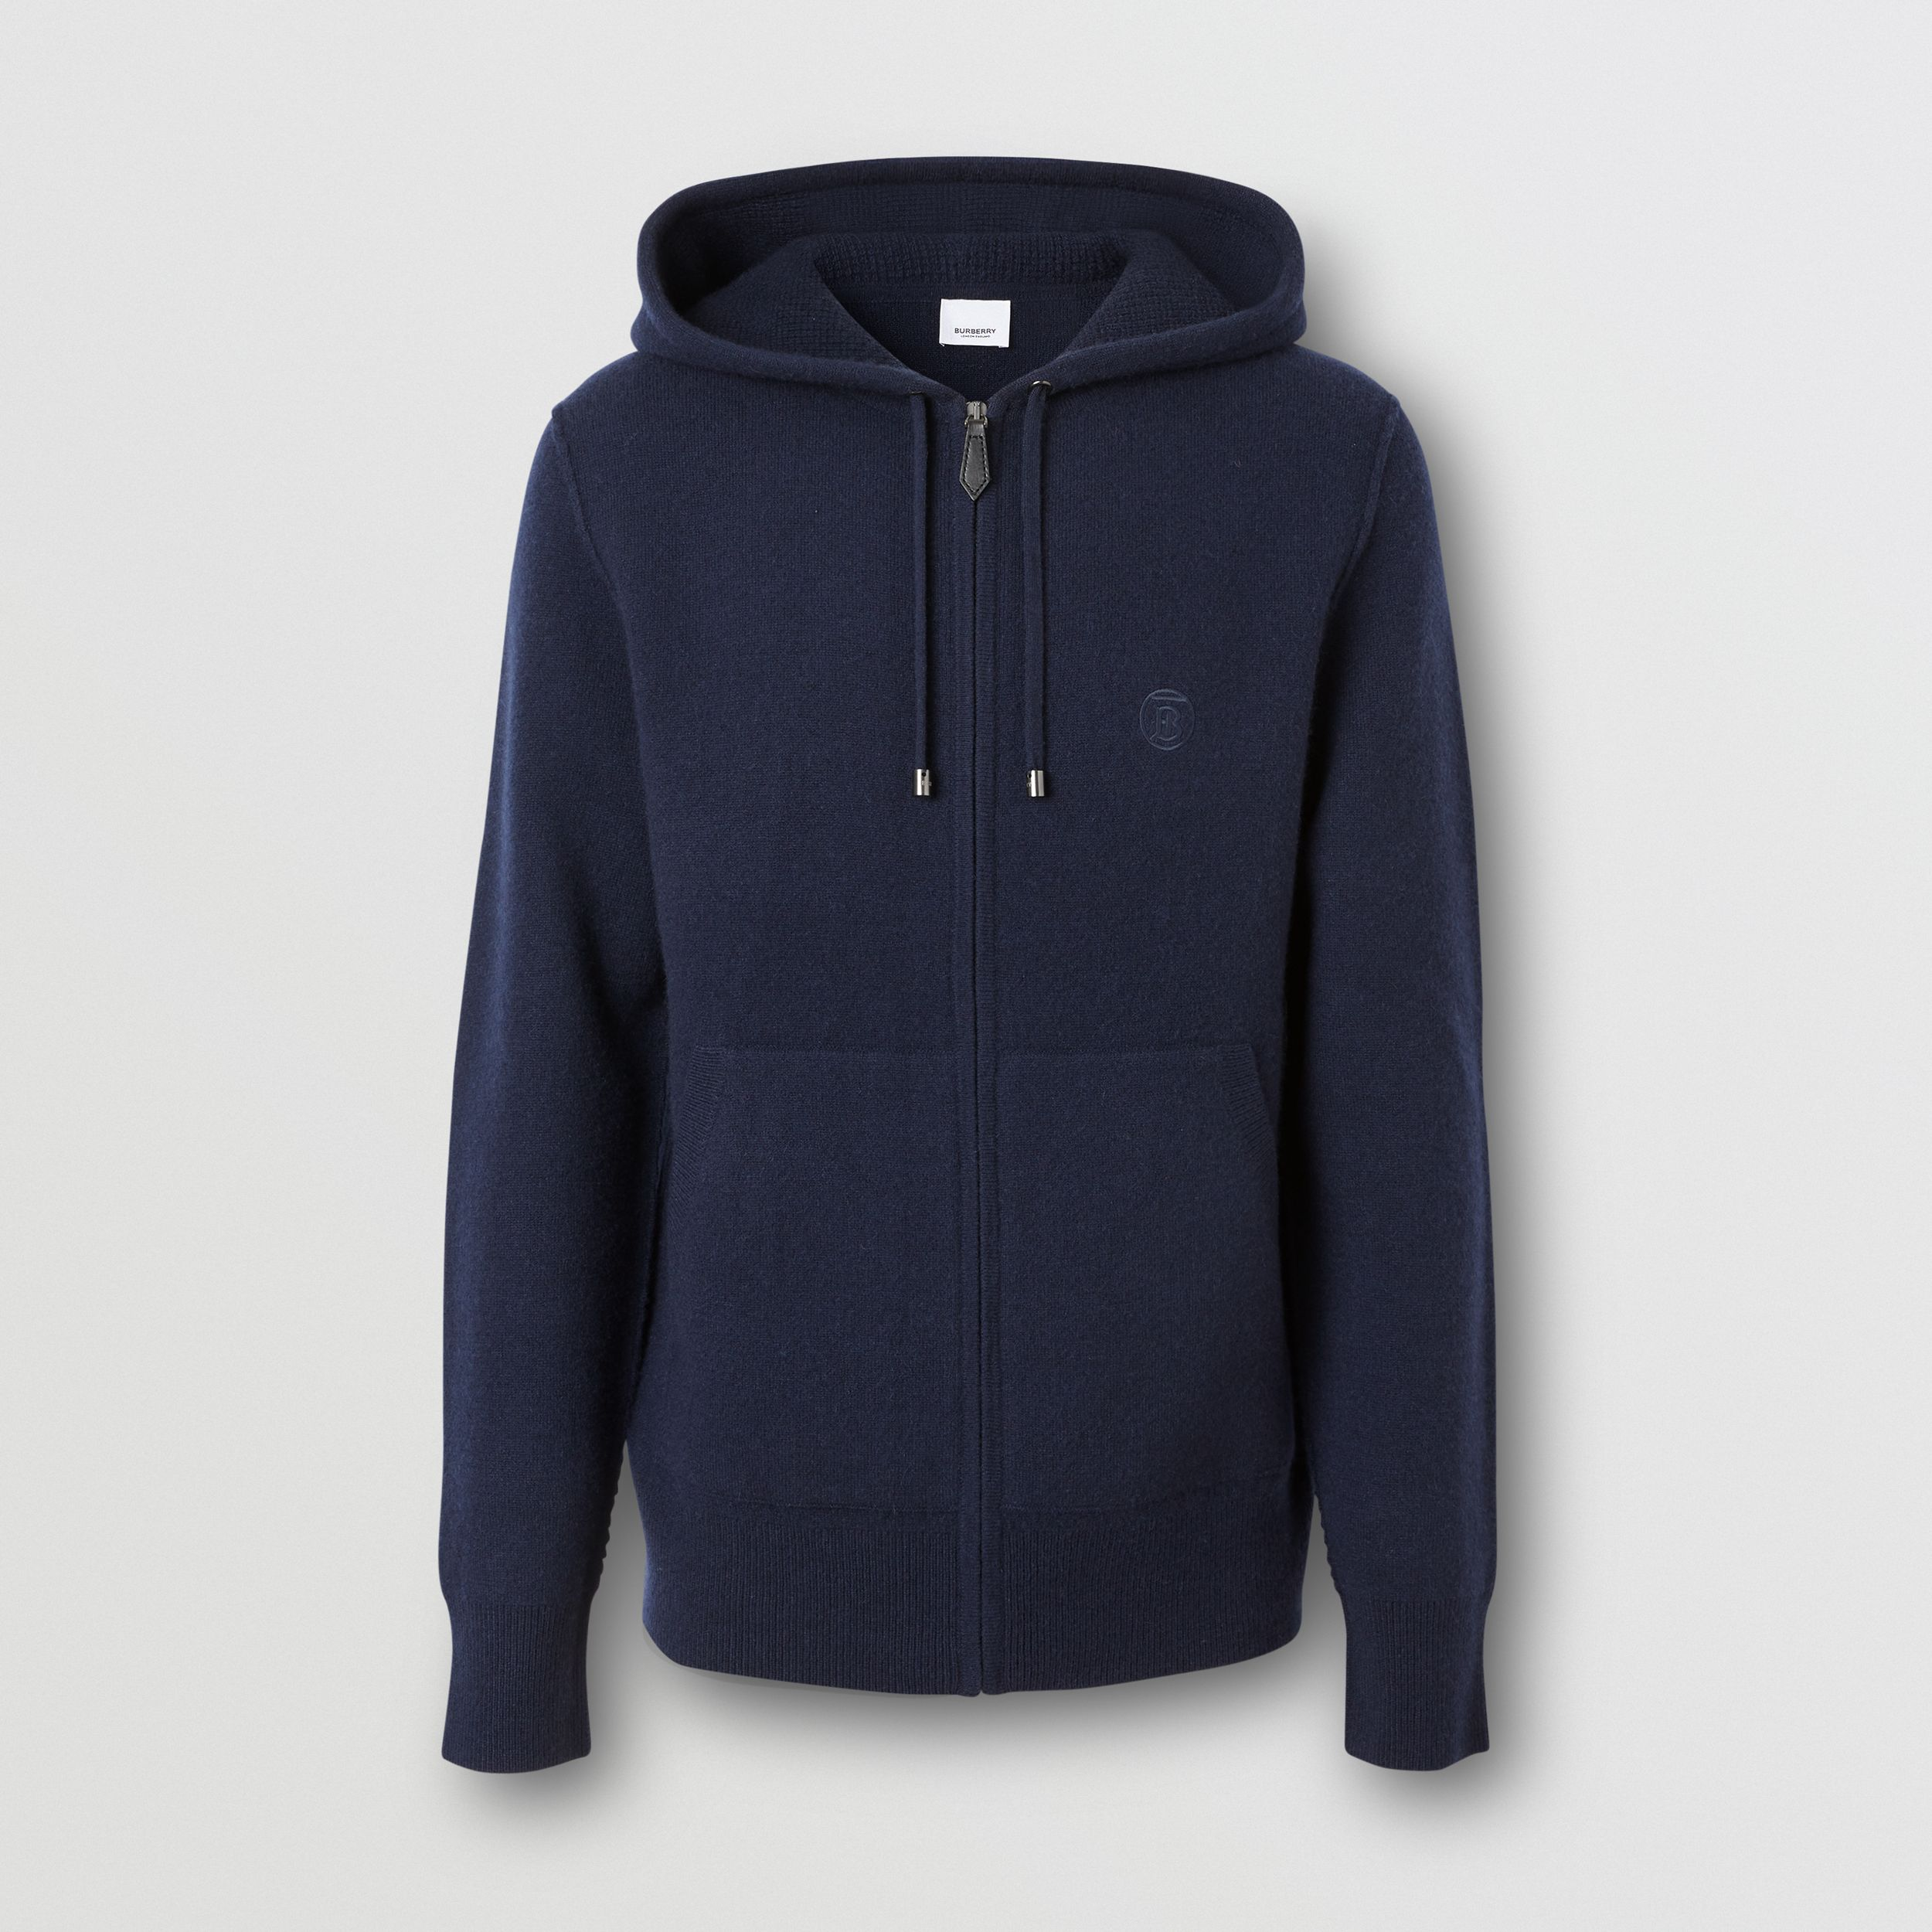 Monogram Motif Cashmere Blend Hooded Top in Navy - Men | Burberry - 4